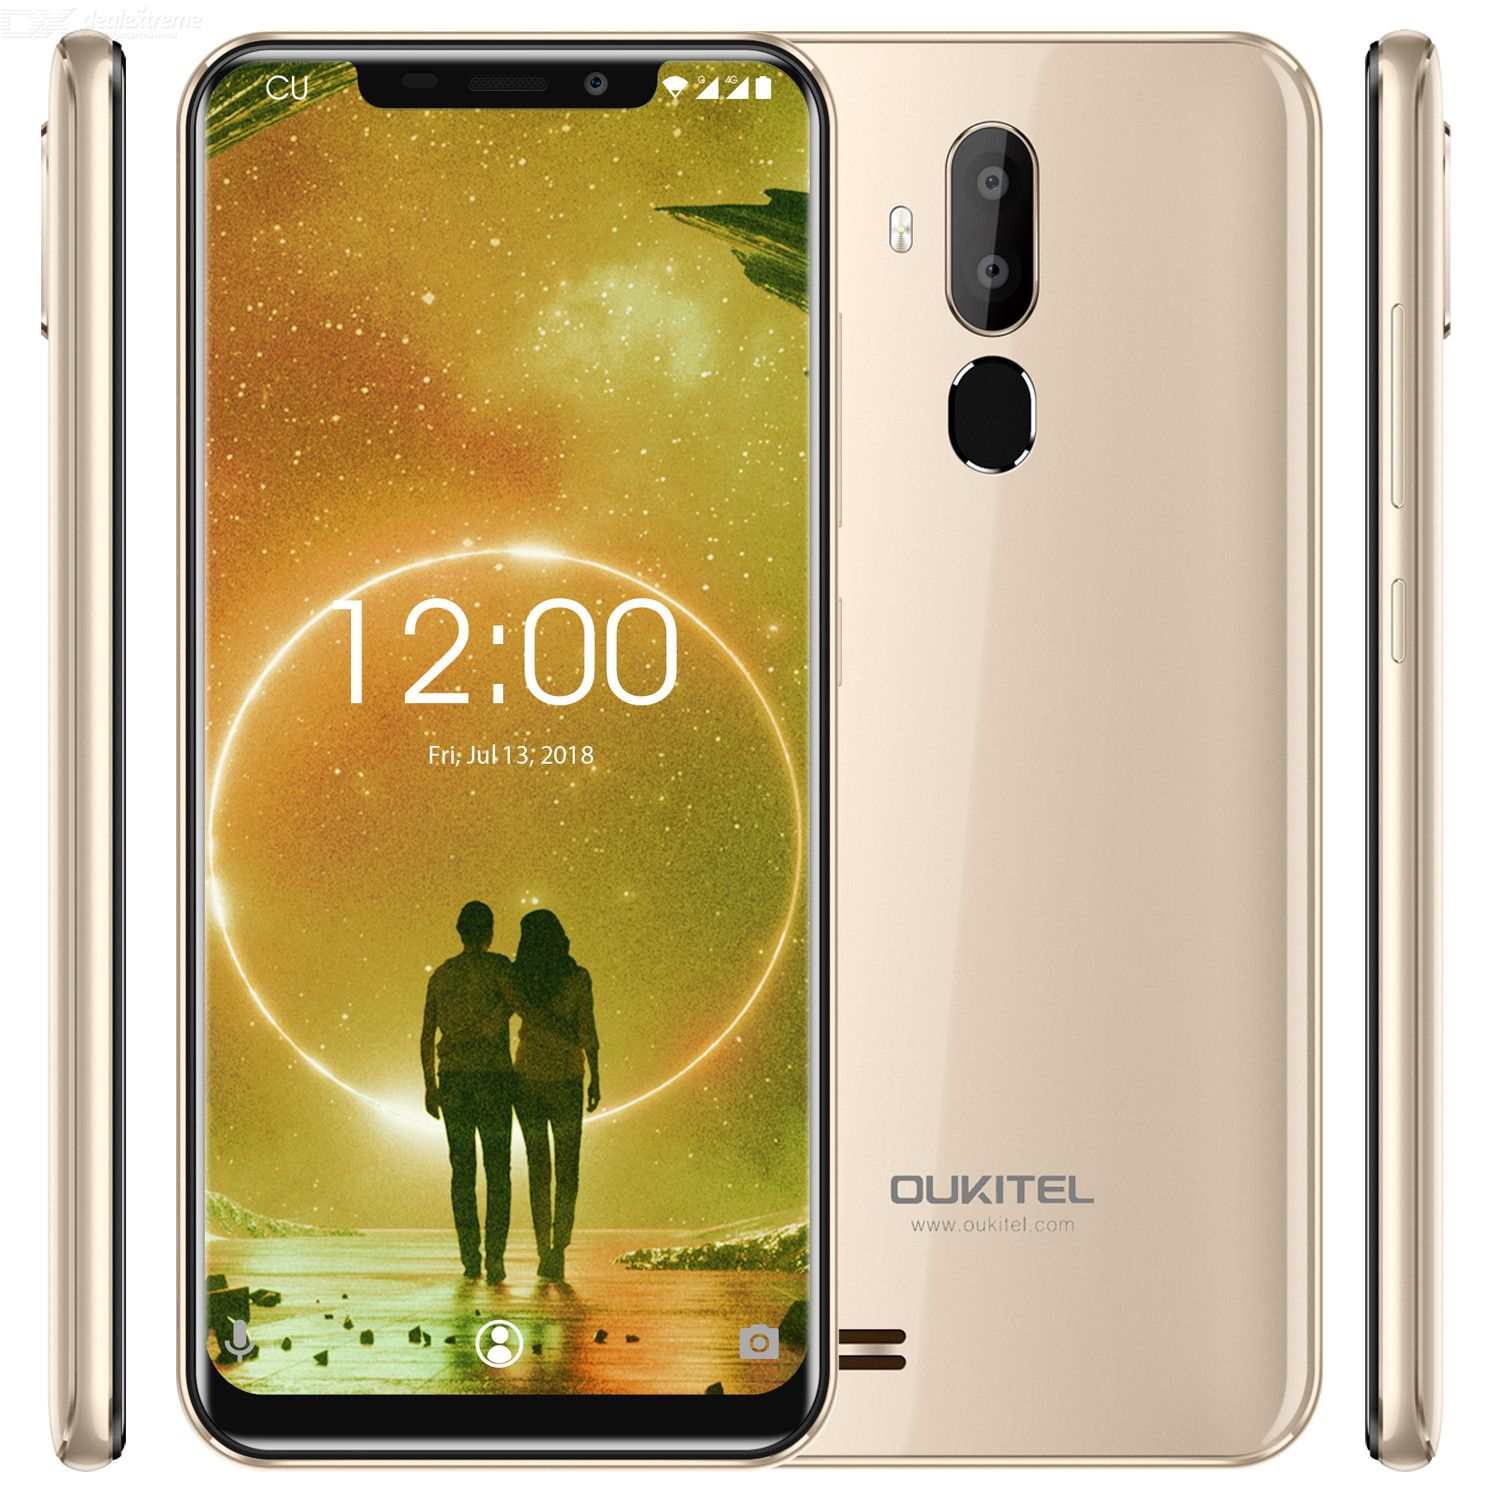 246999-on-OUKITEL-C12-3G-Mobile-phone-618-inch-Large-Screen-Ultra-thin-Android-81-2GB-RAM-16GB-ROM-Cellphone-with-3300mAh-Battery-Face-Ulocked